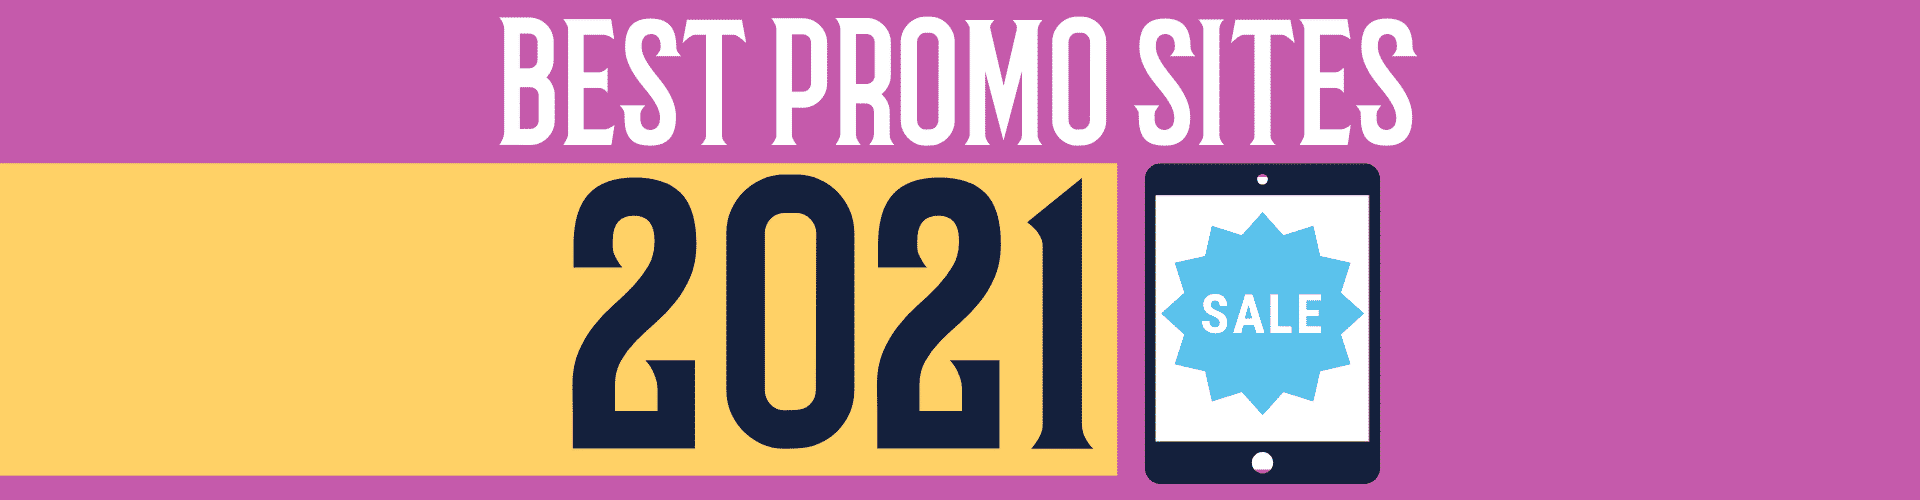 best book promo sites in 2021 - deal sites, discount sites, reader sites, series promotions, book promotions